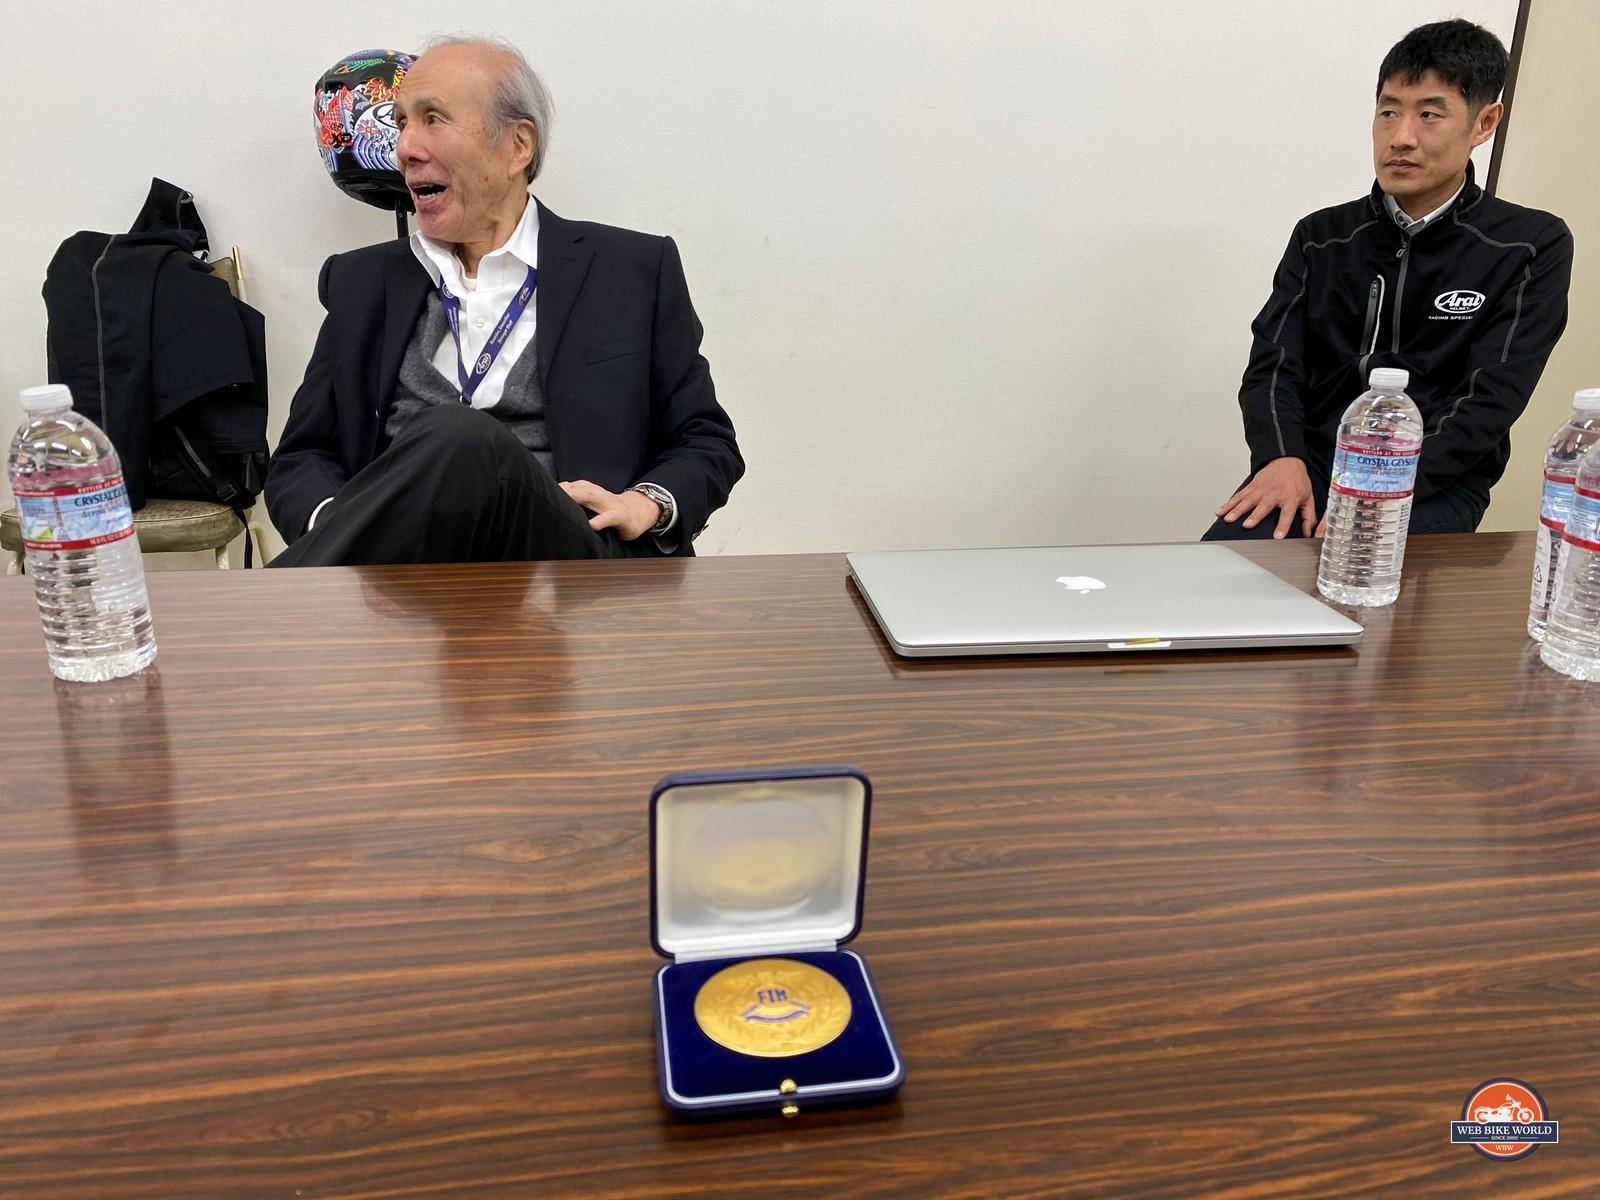 Mr. Michio Arai seated in front of the FIM Gold Medal award.